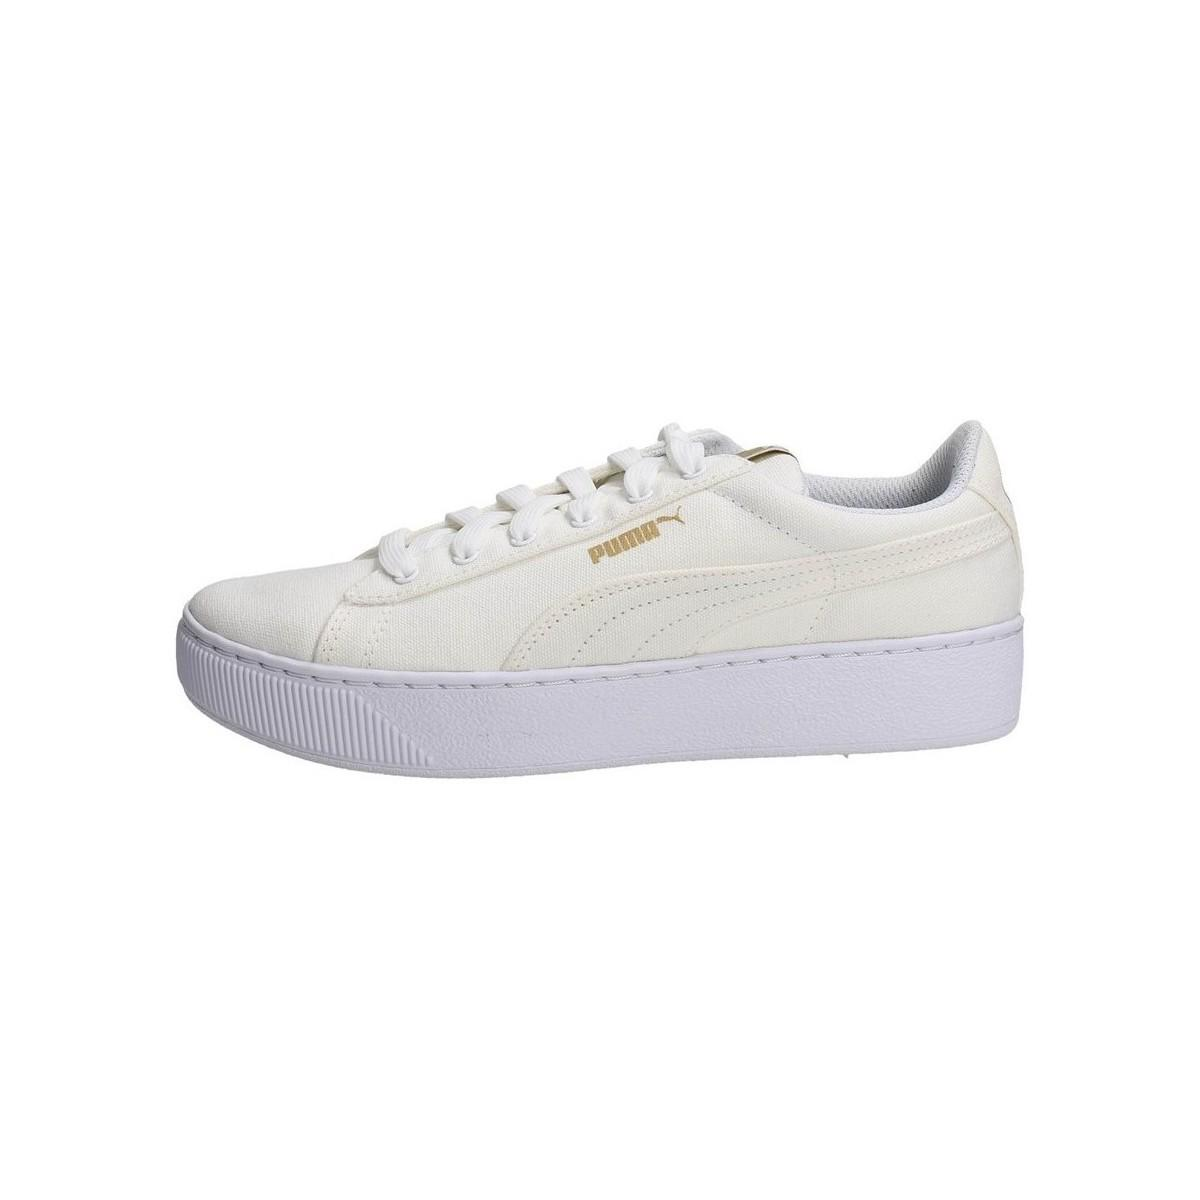 5298890b9c7 Puma Vikky Platform Women s Shoes (trainers) In White in White - Lyst